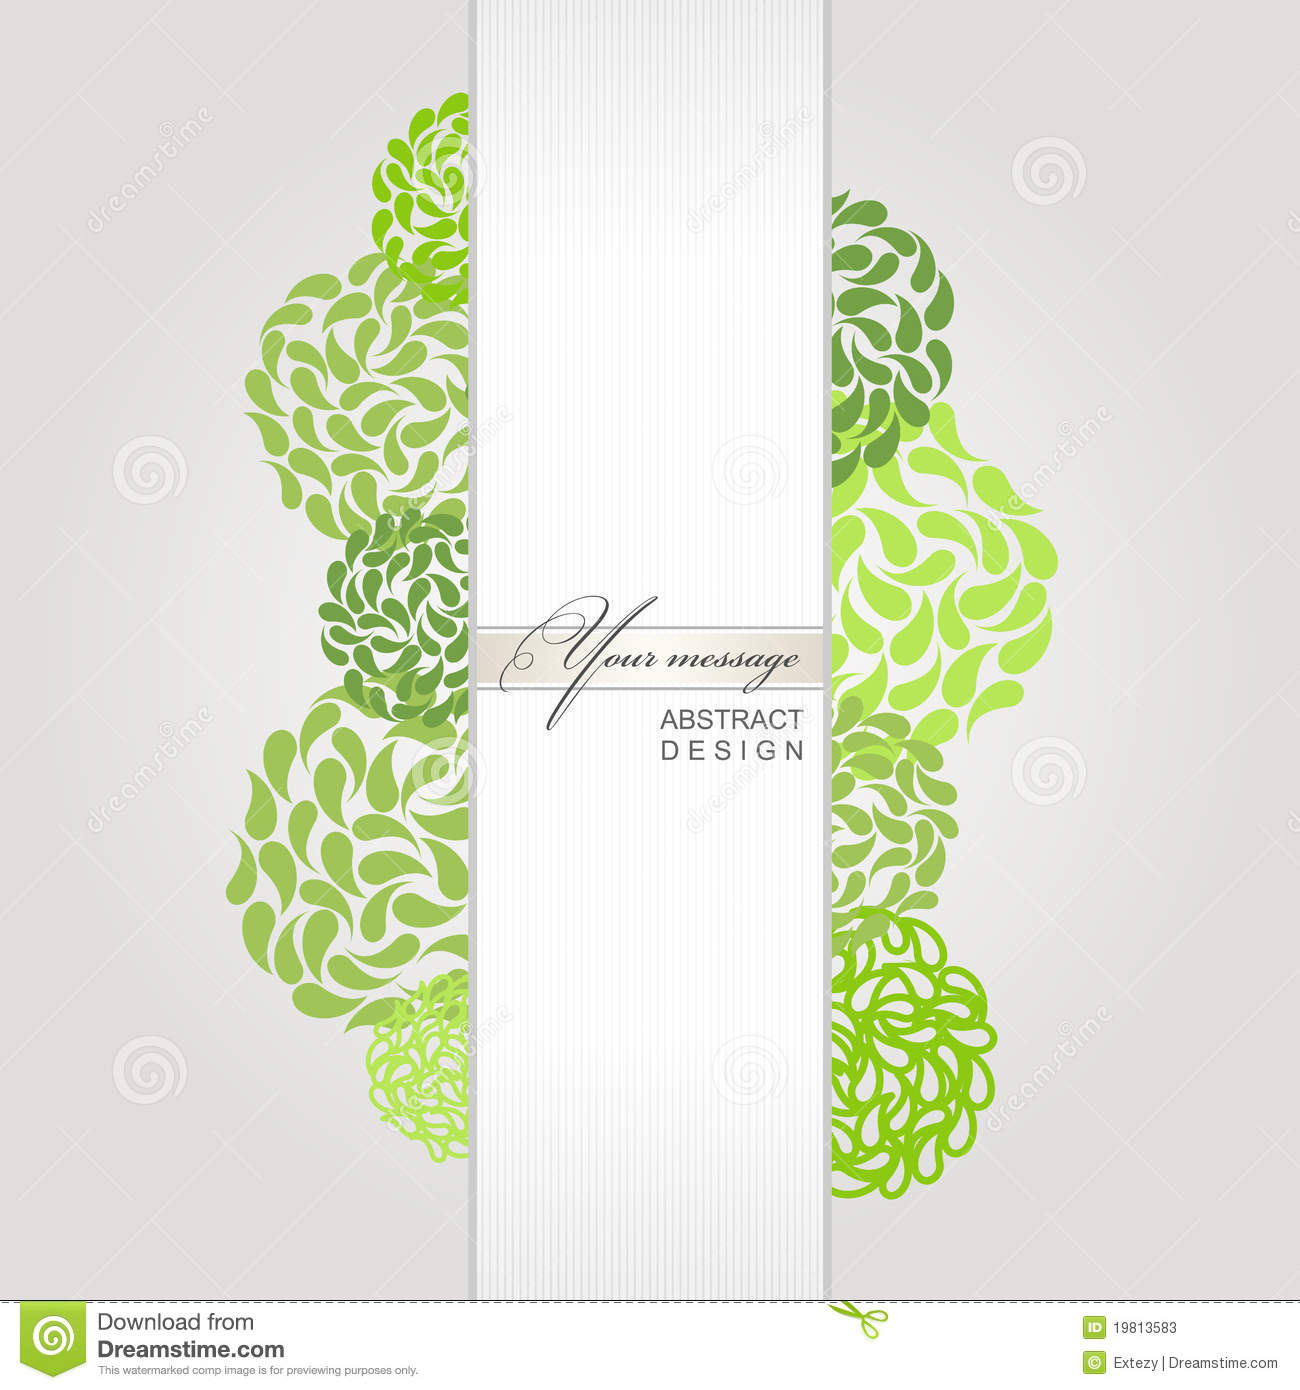 Vector abstract banner green background